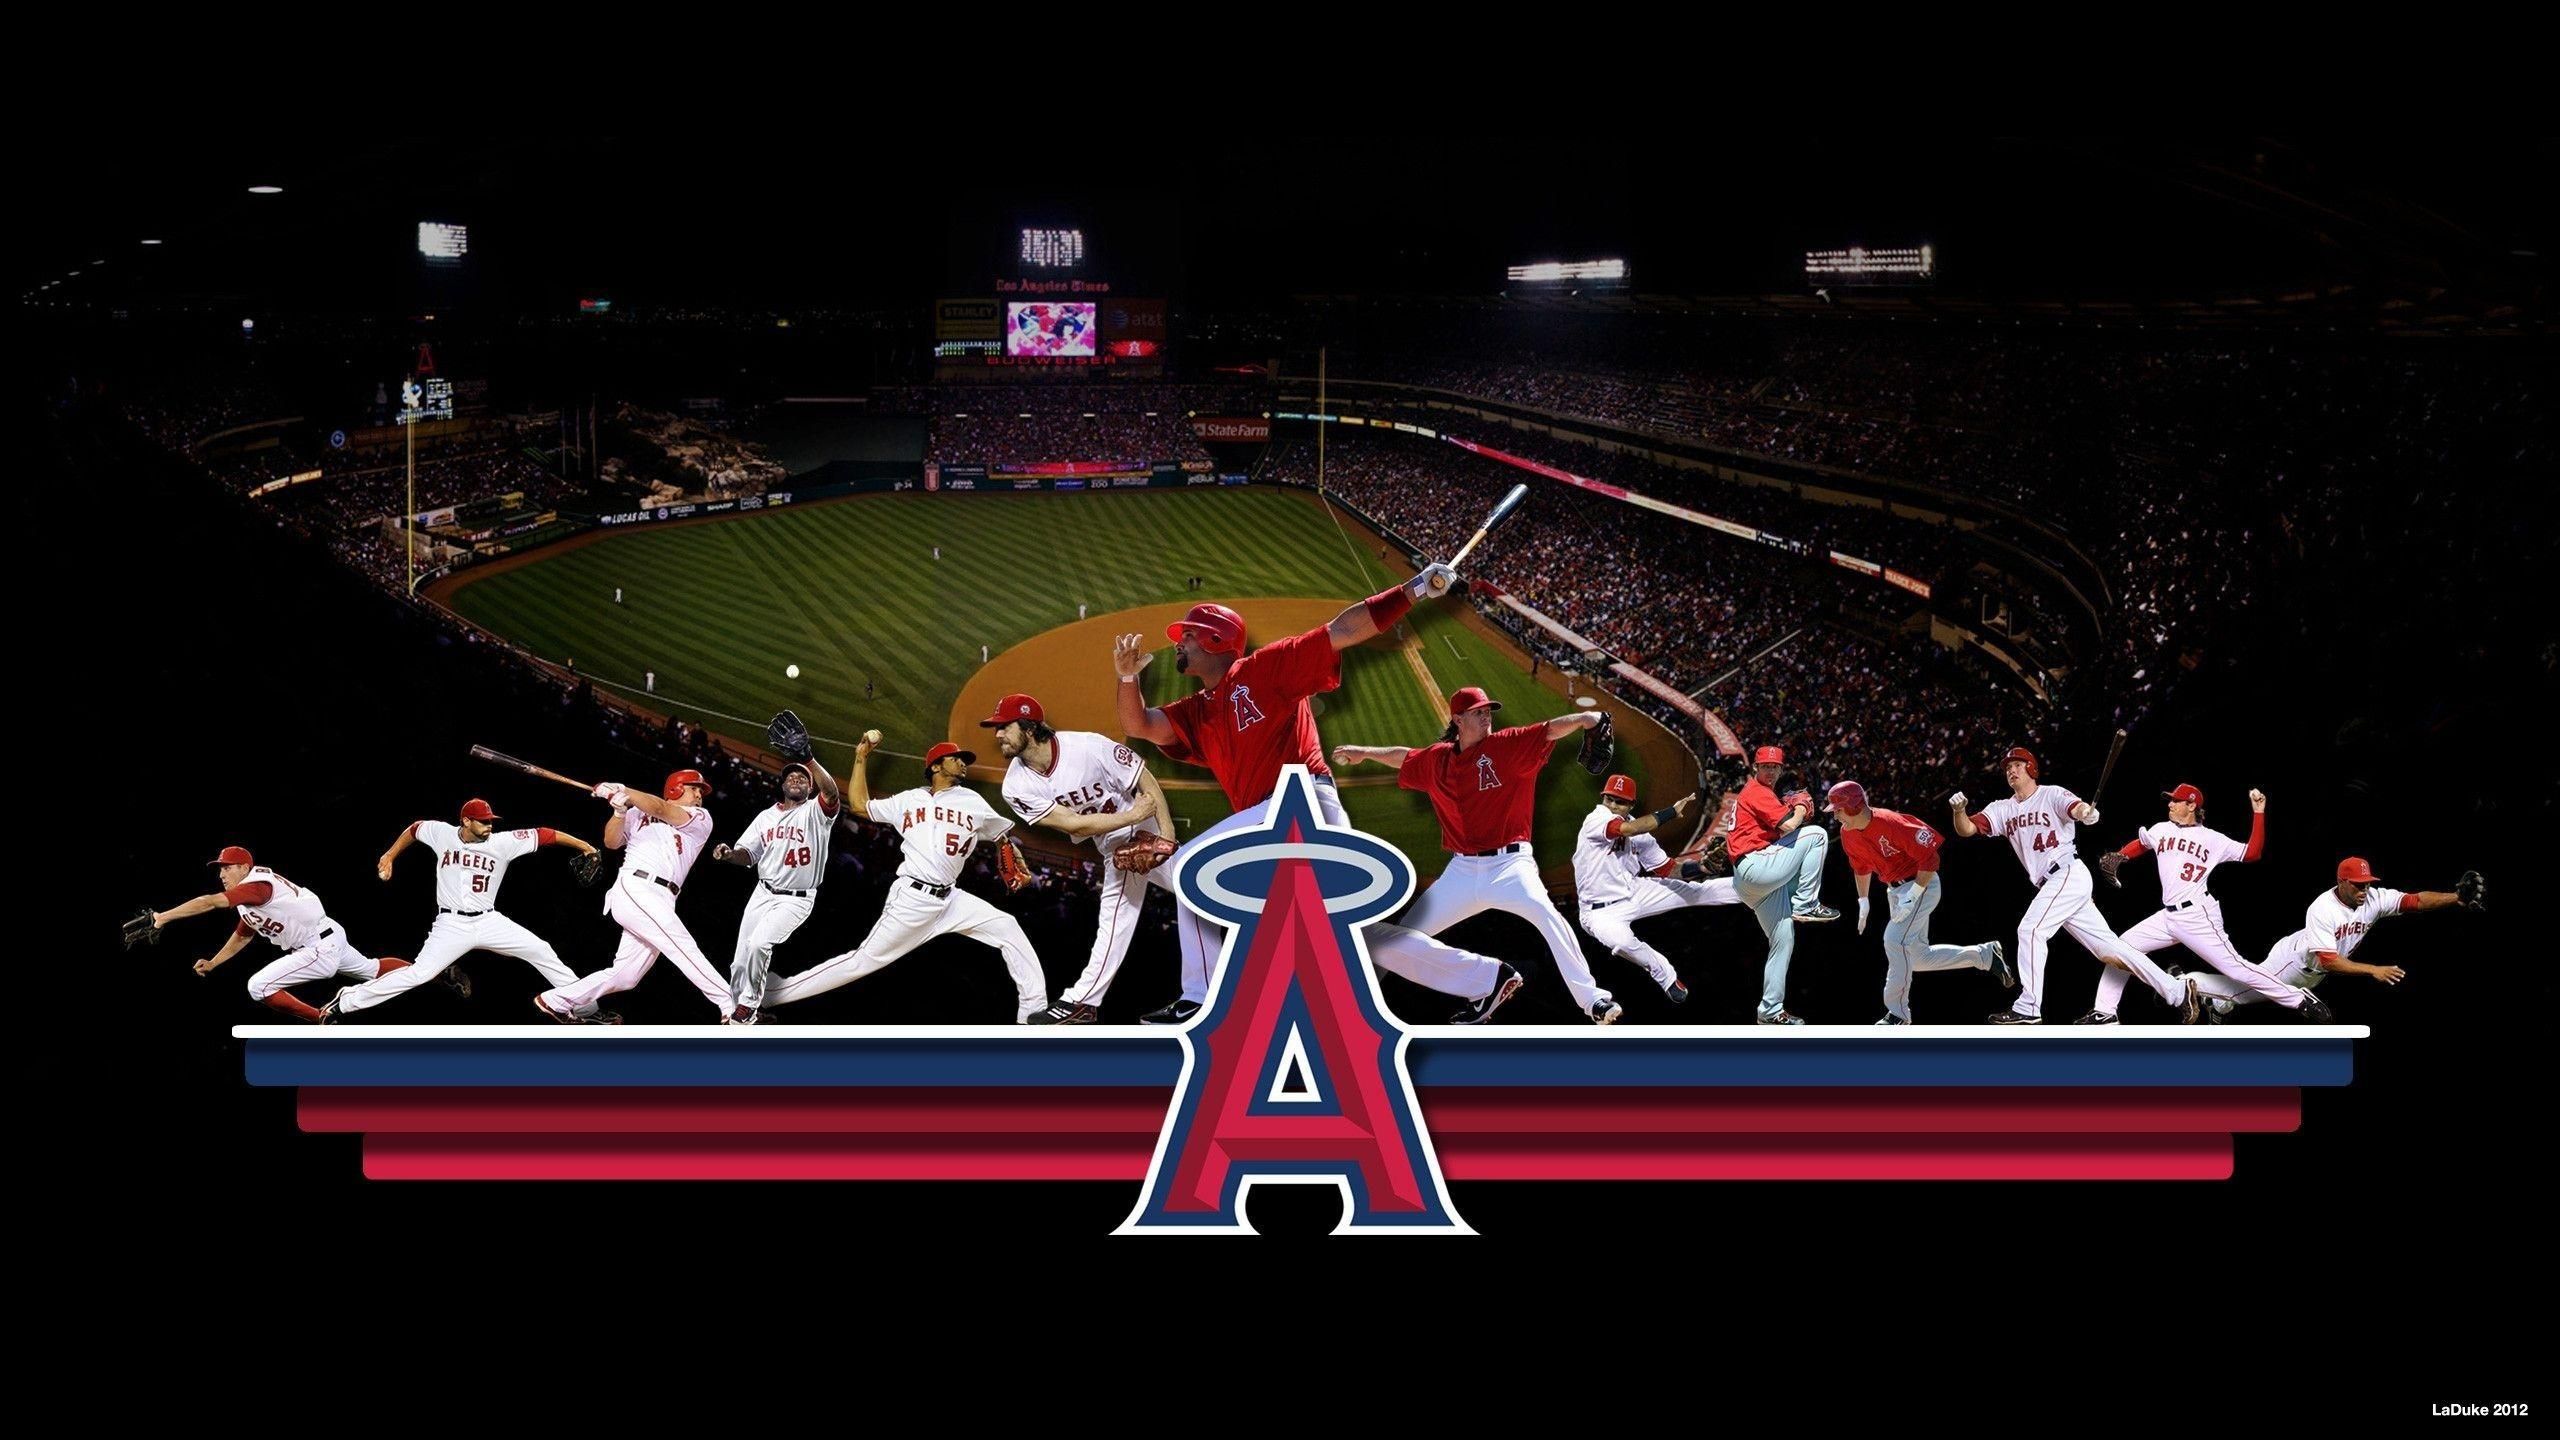 2560x1440 Los Angeles Angels Mlb Baseball Art, Los Angeles Angels